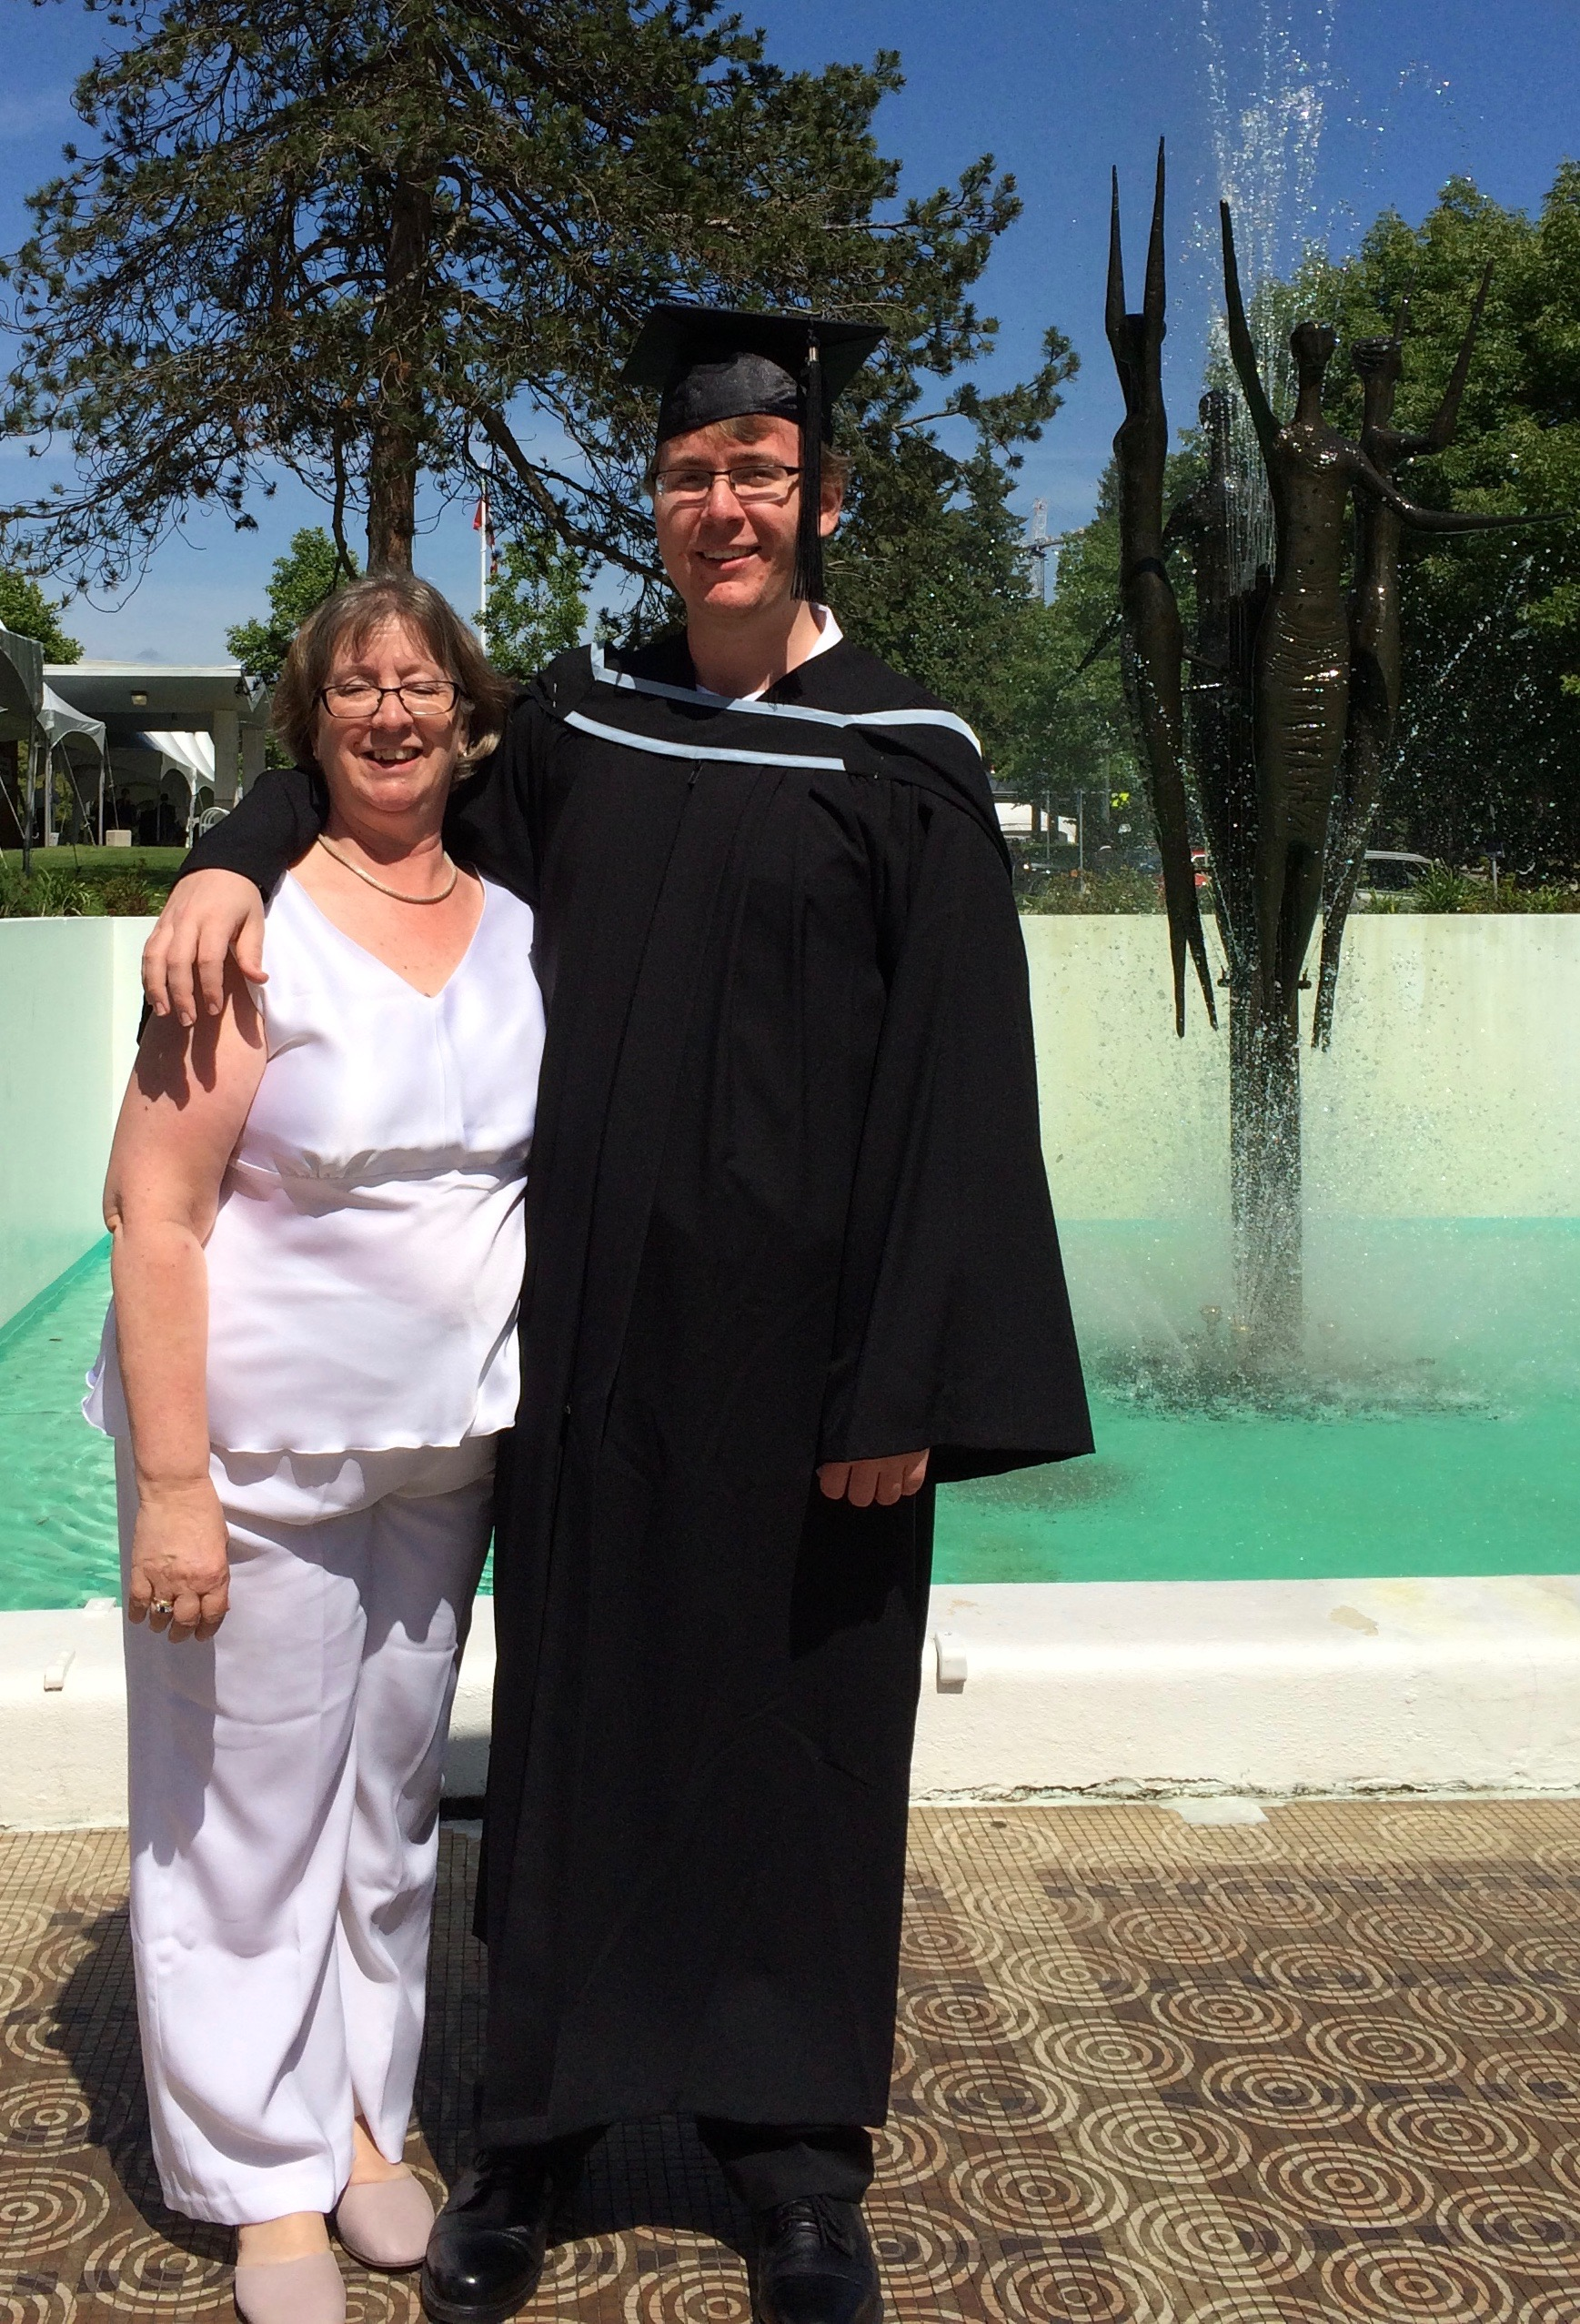 May 2016 - Alexander on graduation day from the University of British Columbia. His dad and I are so proud of him.